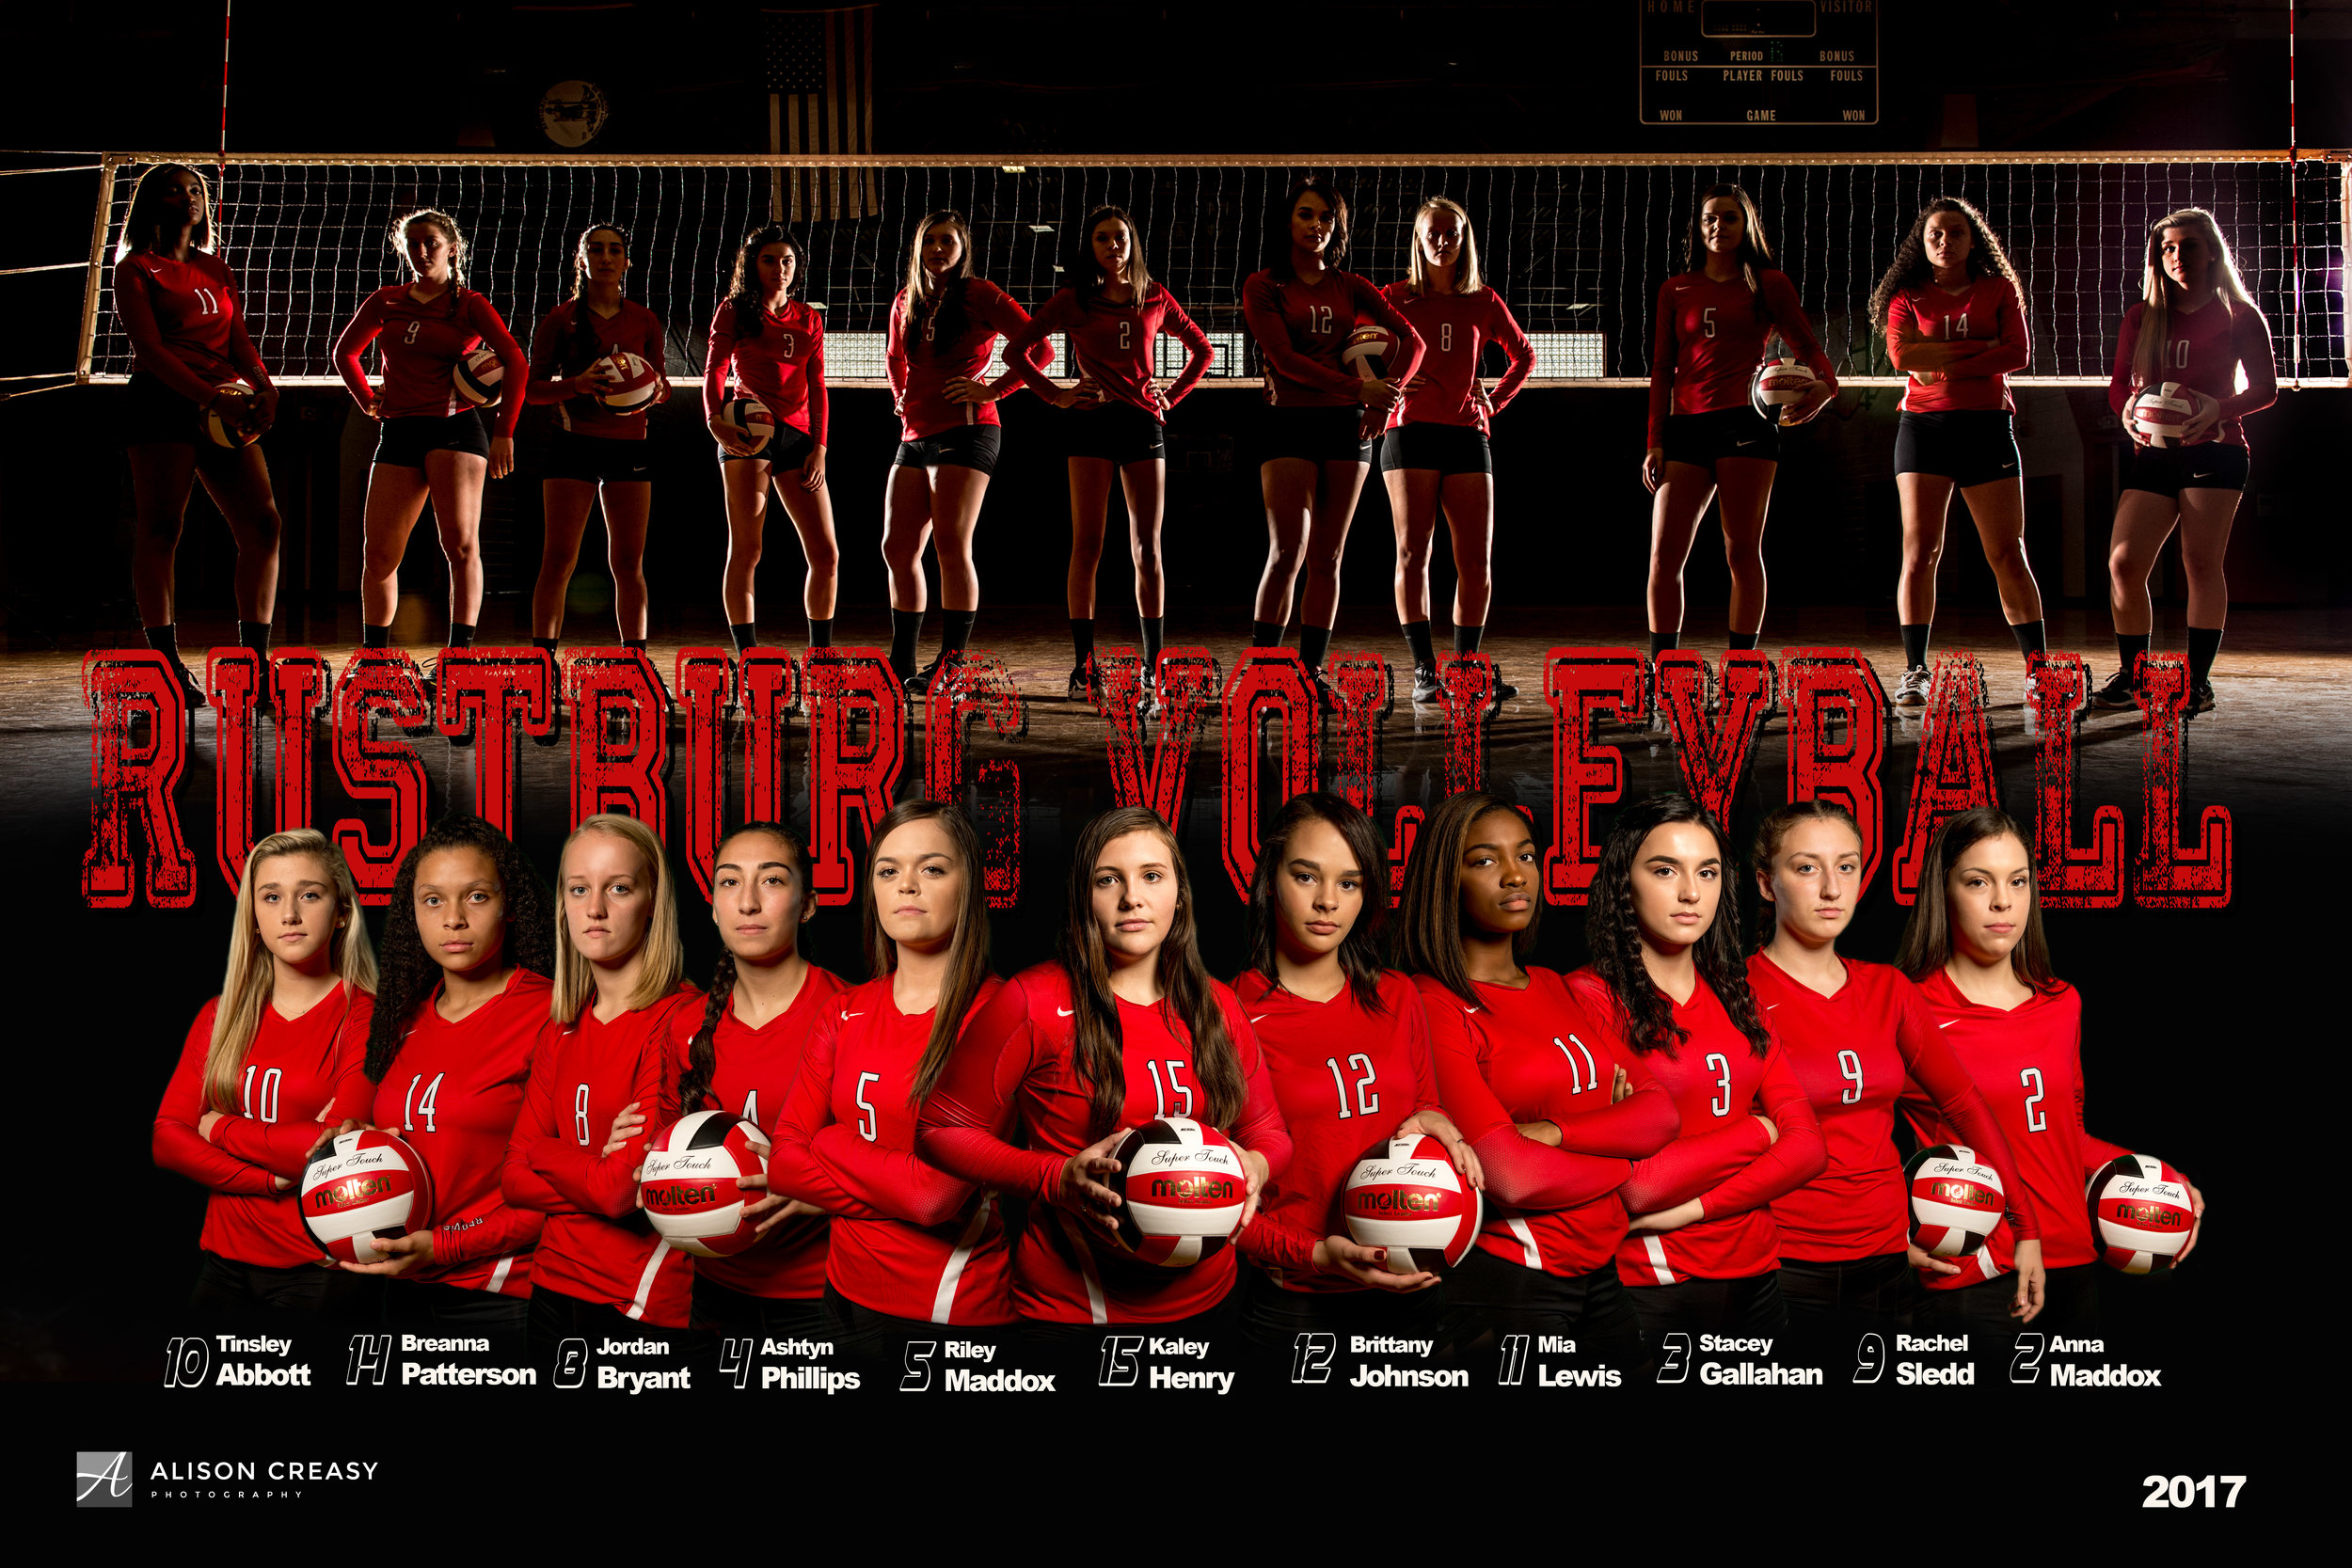 Volleyball Poster 2.jpg